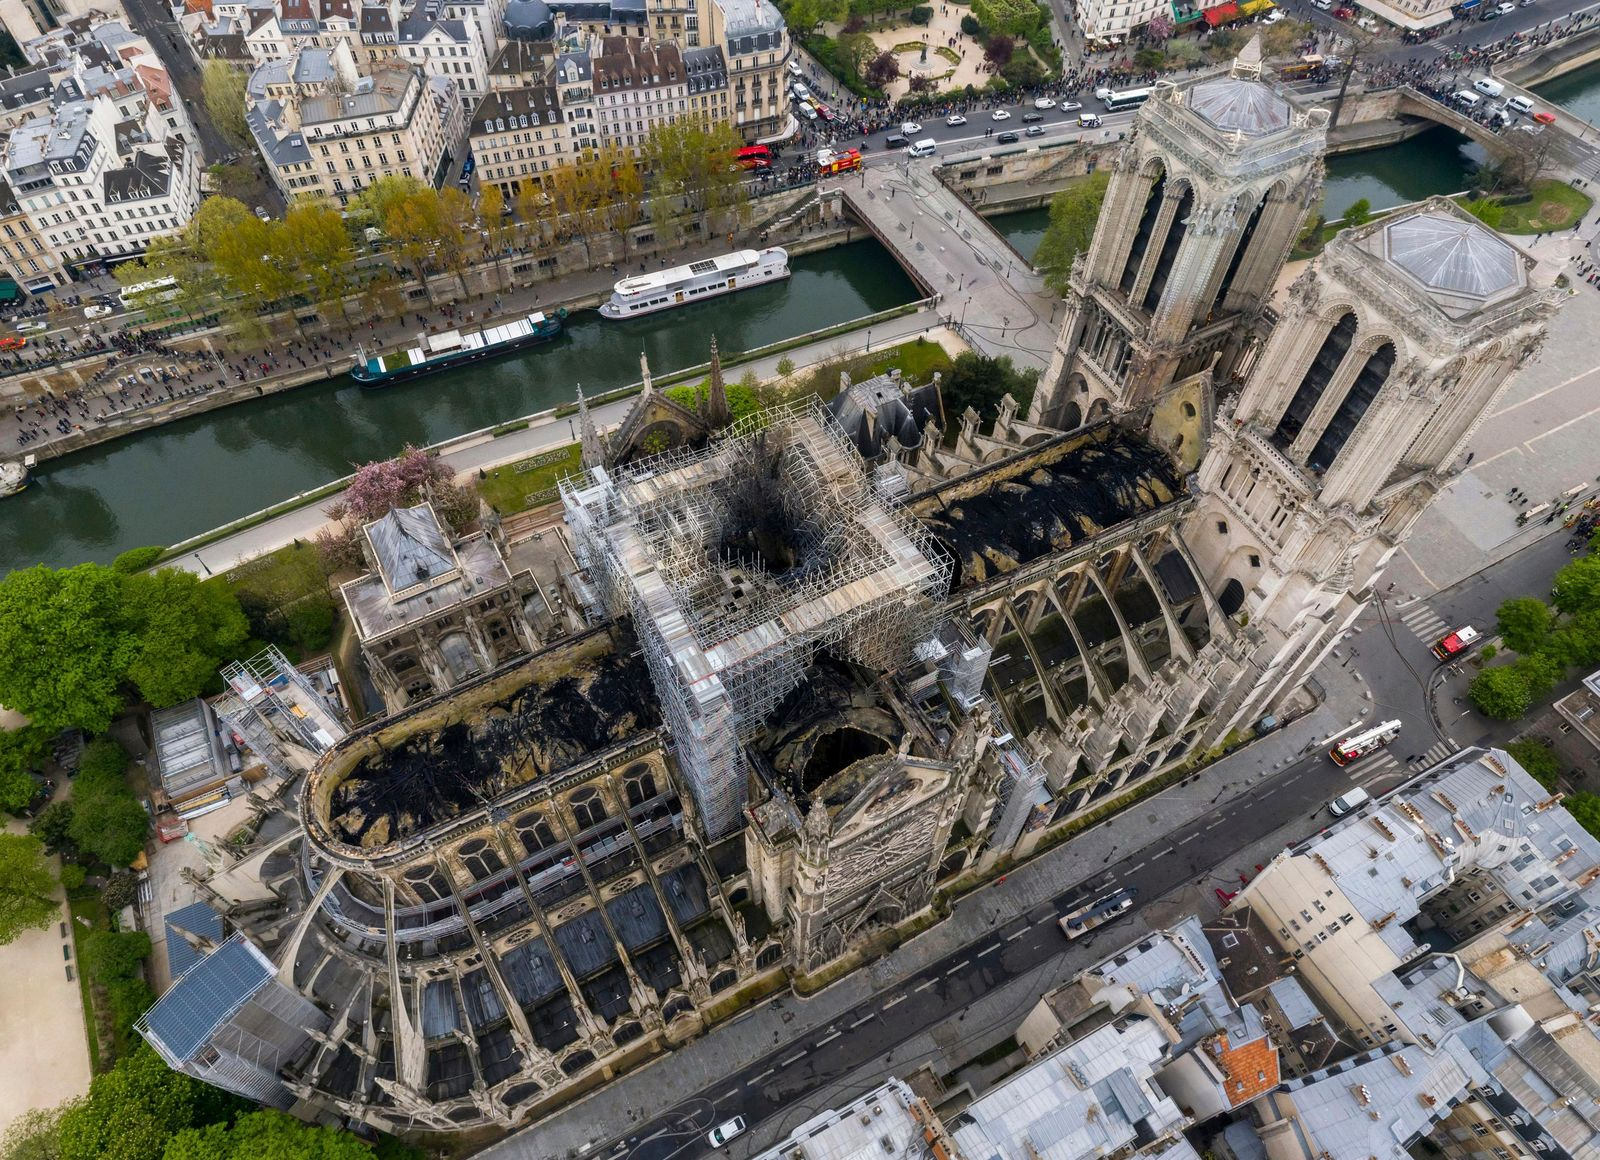 An image made available by Gigarama.ru on Wednesday April 17, 2019 shows an aerial shot of the fire damage to Notre Dame cathedral in Paris on Tuesday April 16. (Gigarama.ru via AP)